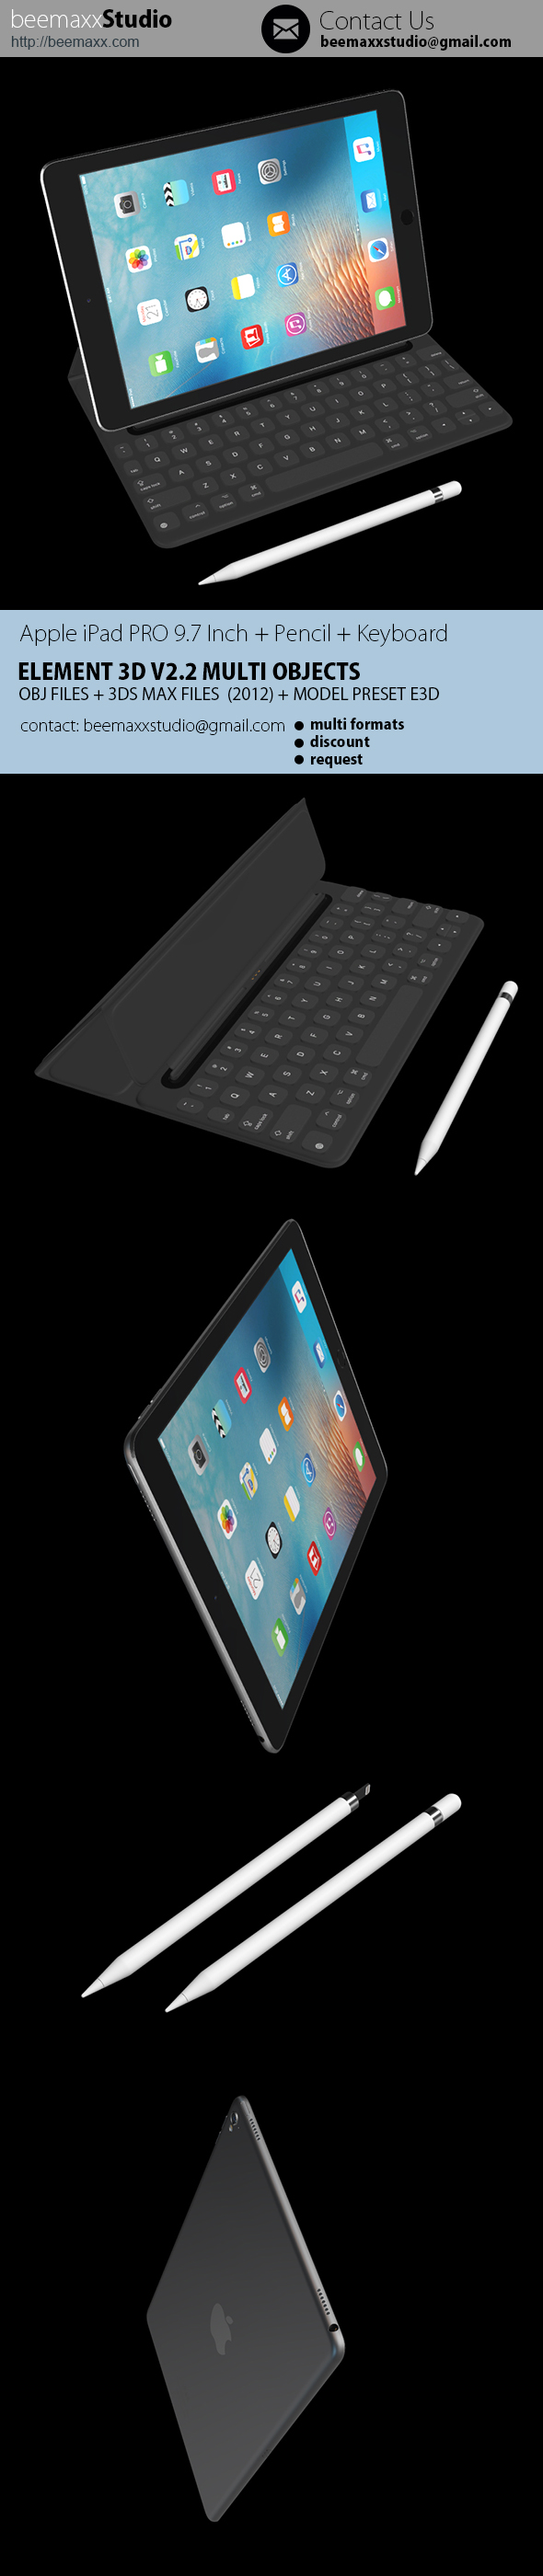 Apple iPad Pro 9.7 Inch 2016 E3D + Apple Pencil + Apple Smart Keyboard - 3DOcean Item for Sale